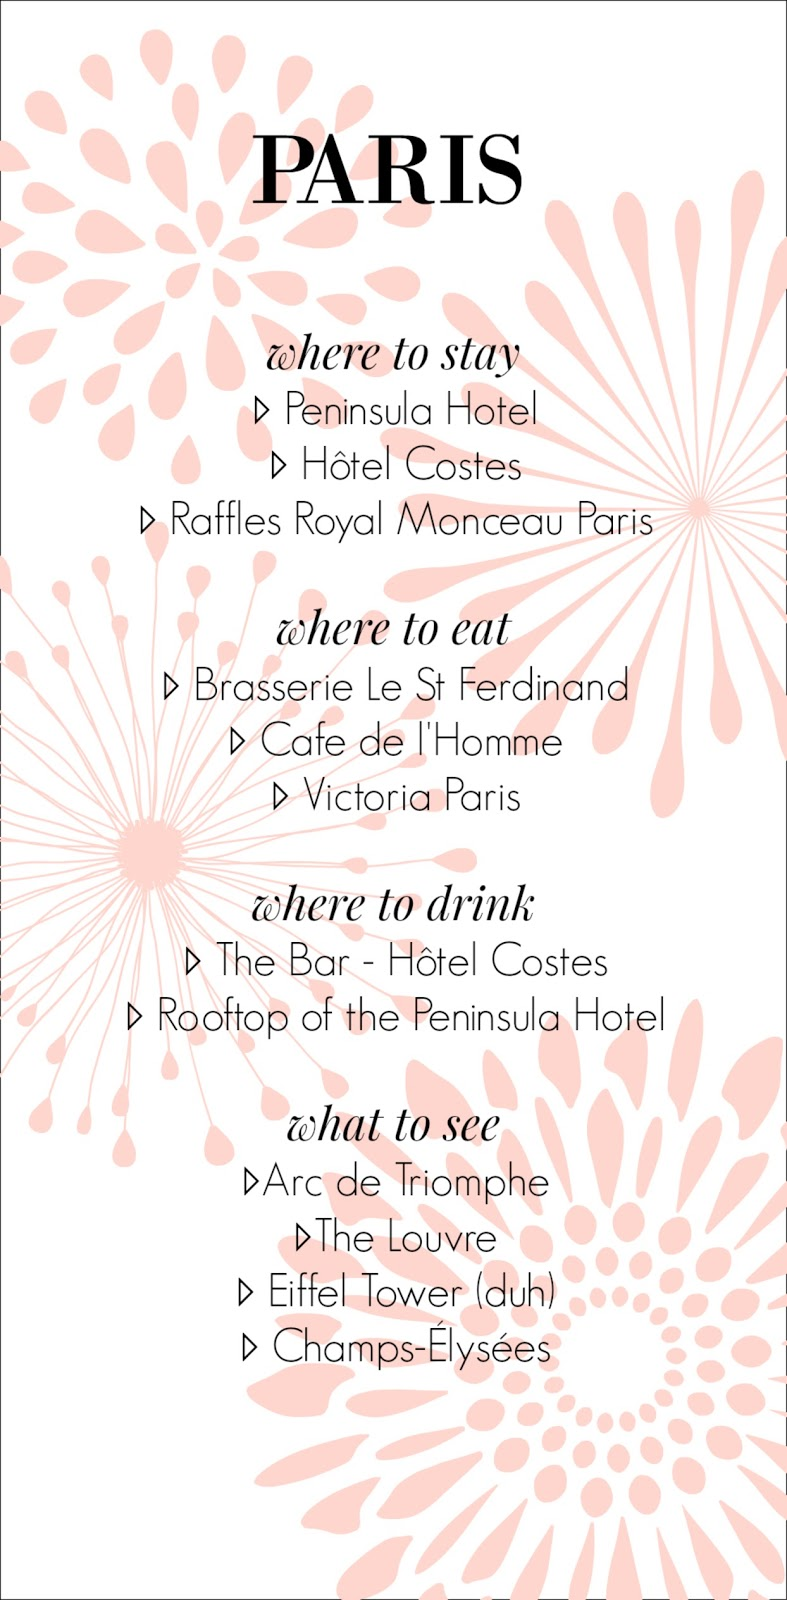 where to stay ▹ Peninsula Hotel ▹ Hôtel Costes ▹ Raffles Royal Monceau Paris  where to eat ▹ Brasserie Le St Ferdinand ▹ Cafe de l'Homme ▹ Victoria Paris  where to drink ▹ The Bar - Hôtel Costes ▹ Rooftop of the Peninsula Hotel  what to see ▹Arc de Triomphe ▹The Louvre ▹ Eiffel Tower (duh) ▹ Champs-Élysées